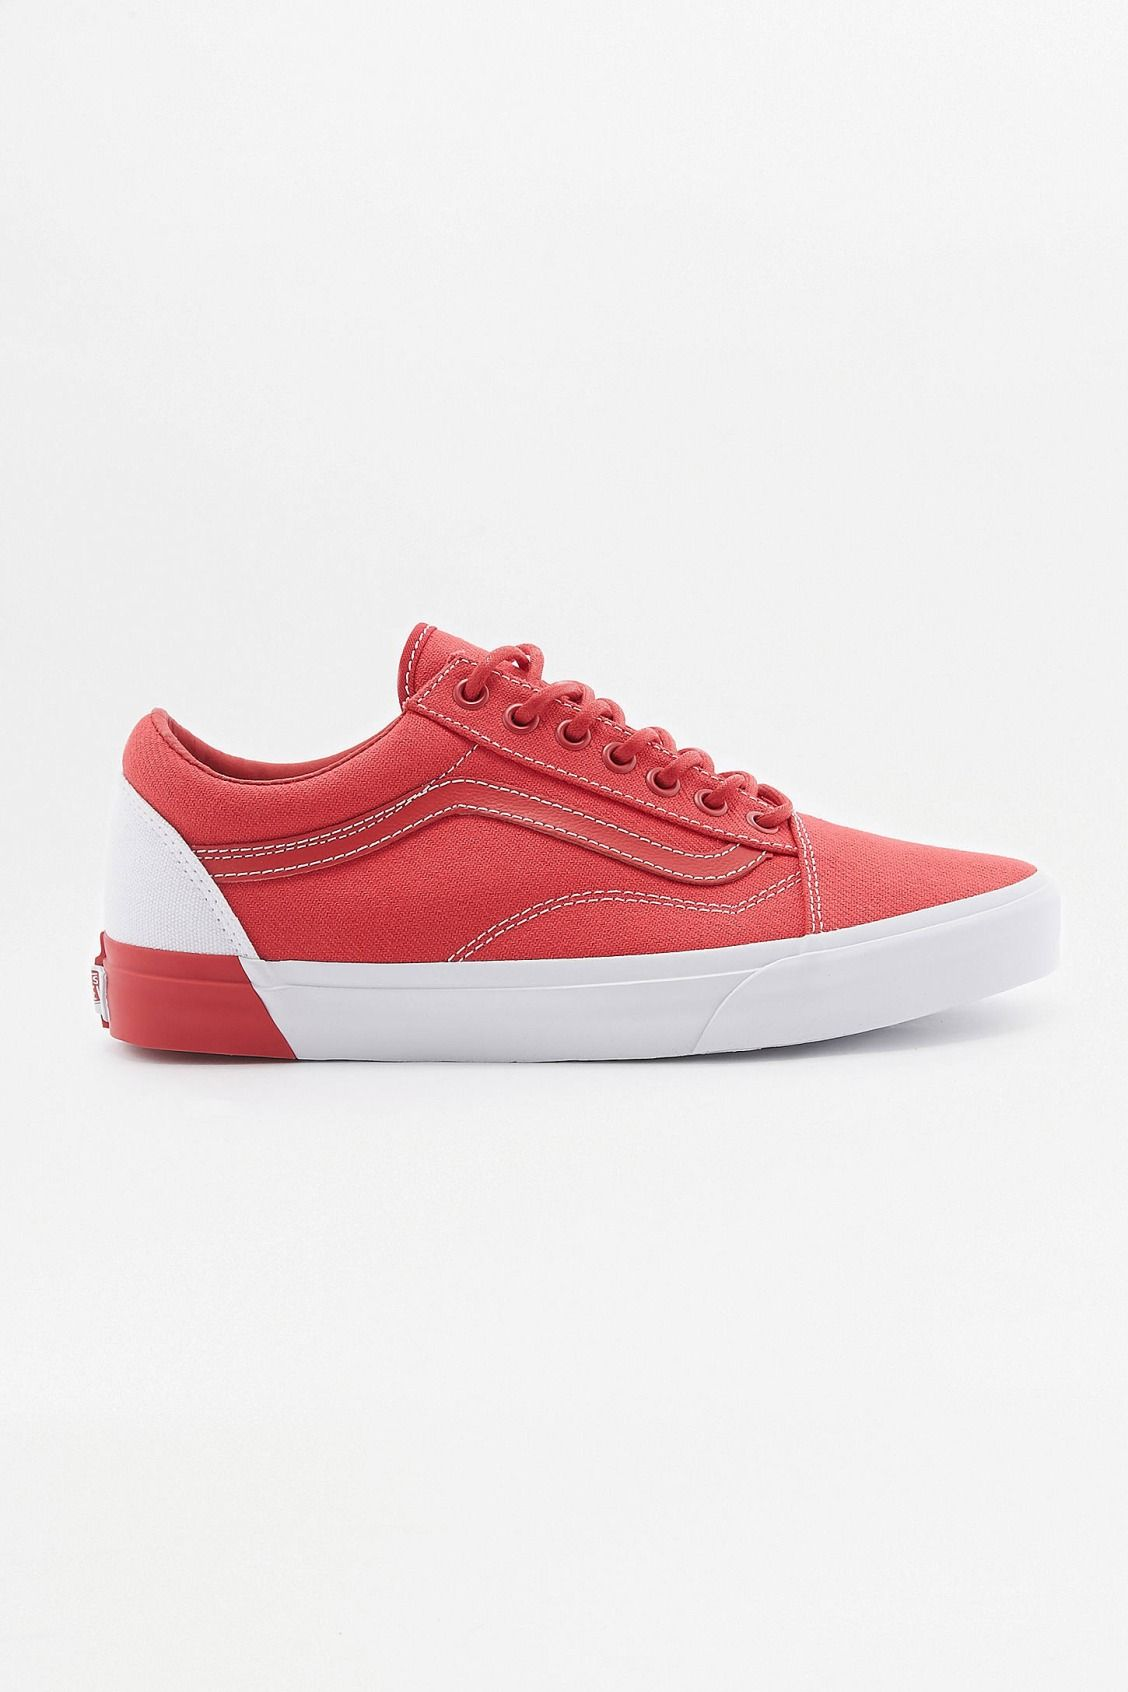 9dcc7e21a6 Vans Old Skool Blocked Red and White Trainers